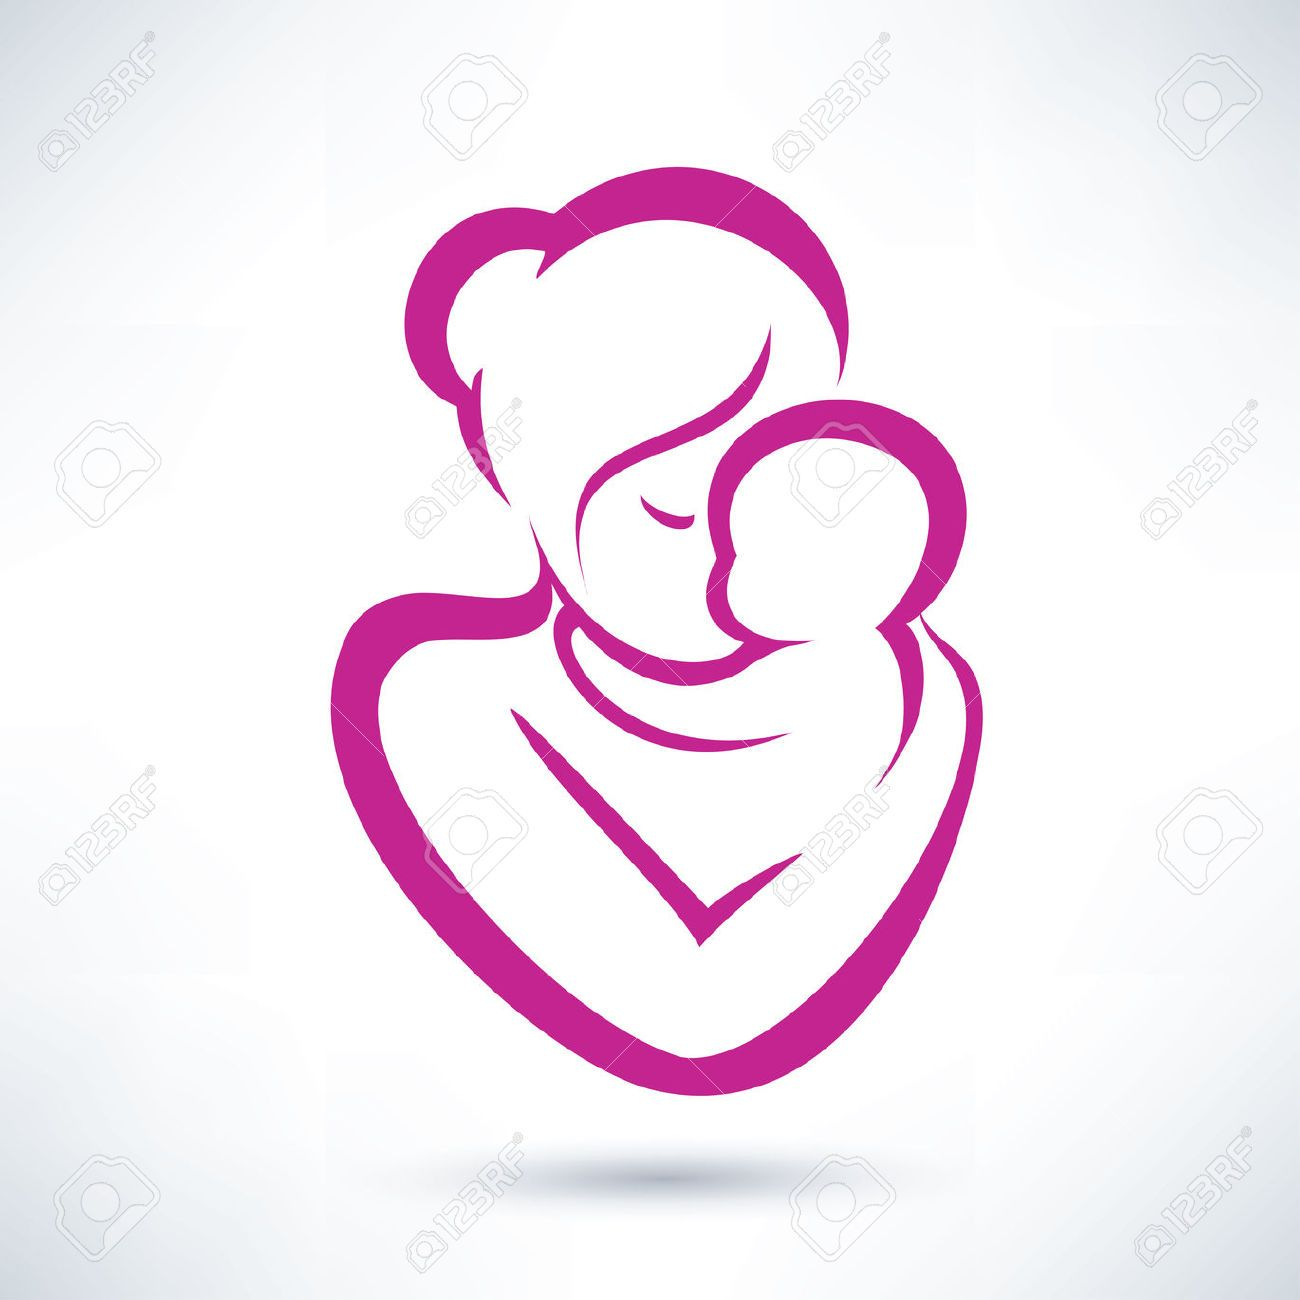 mom and baby clipart google search [ 1300 x 1300 Pixel ]